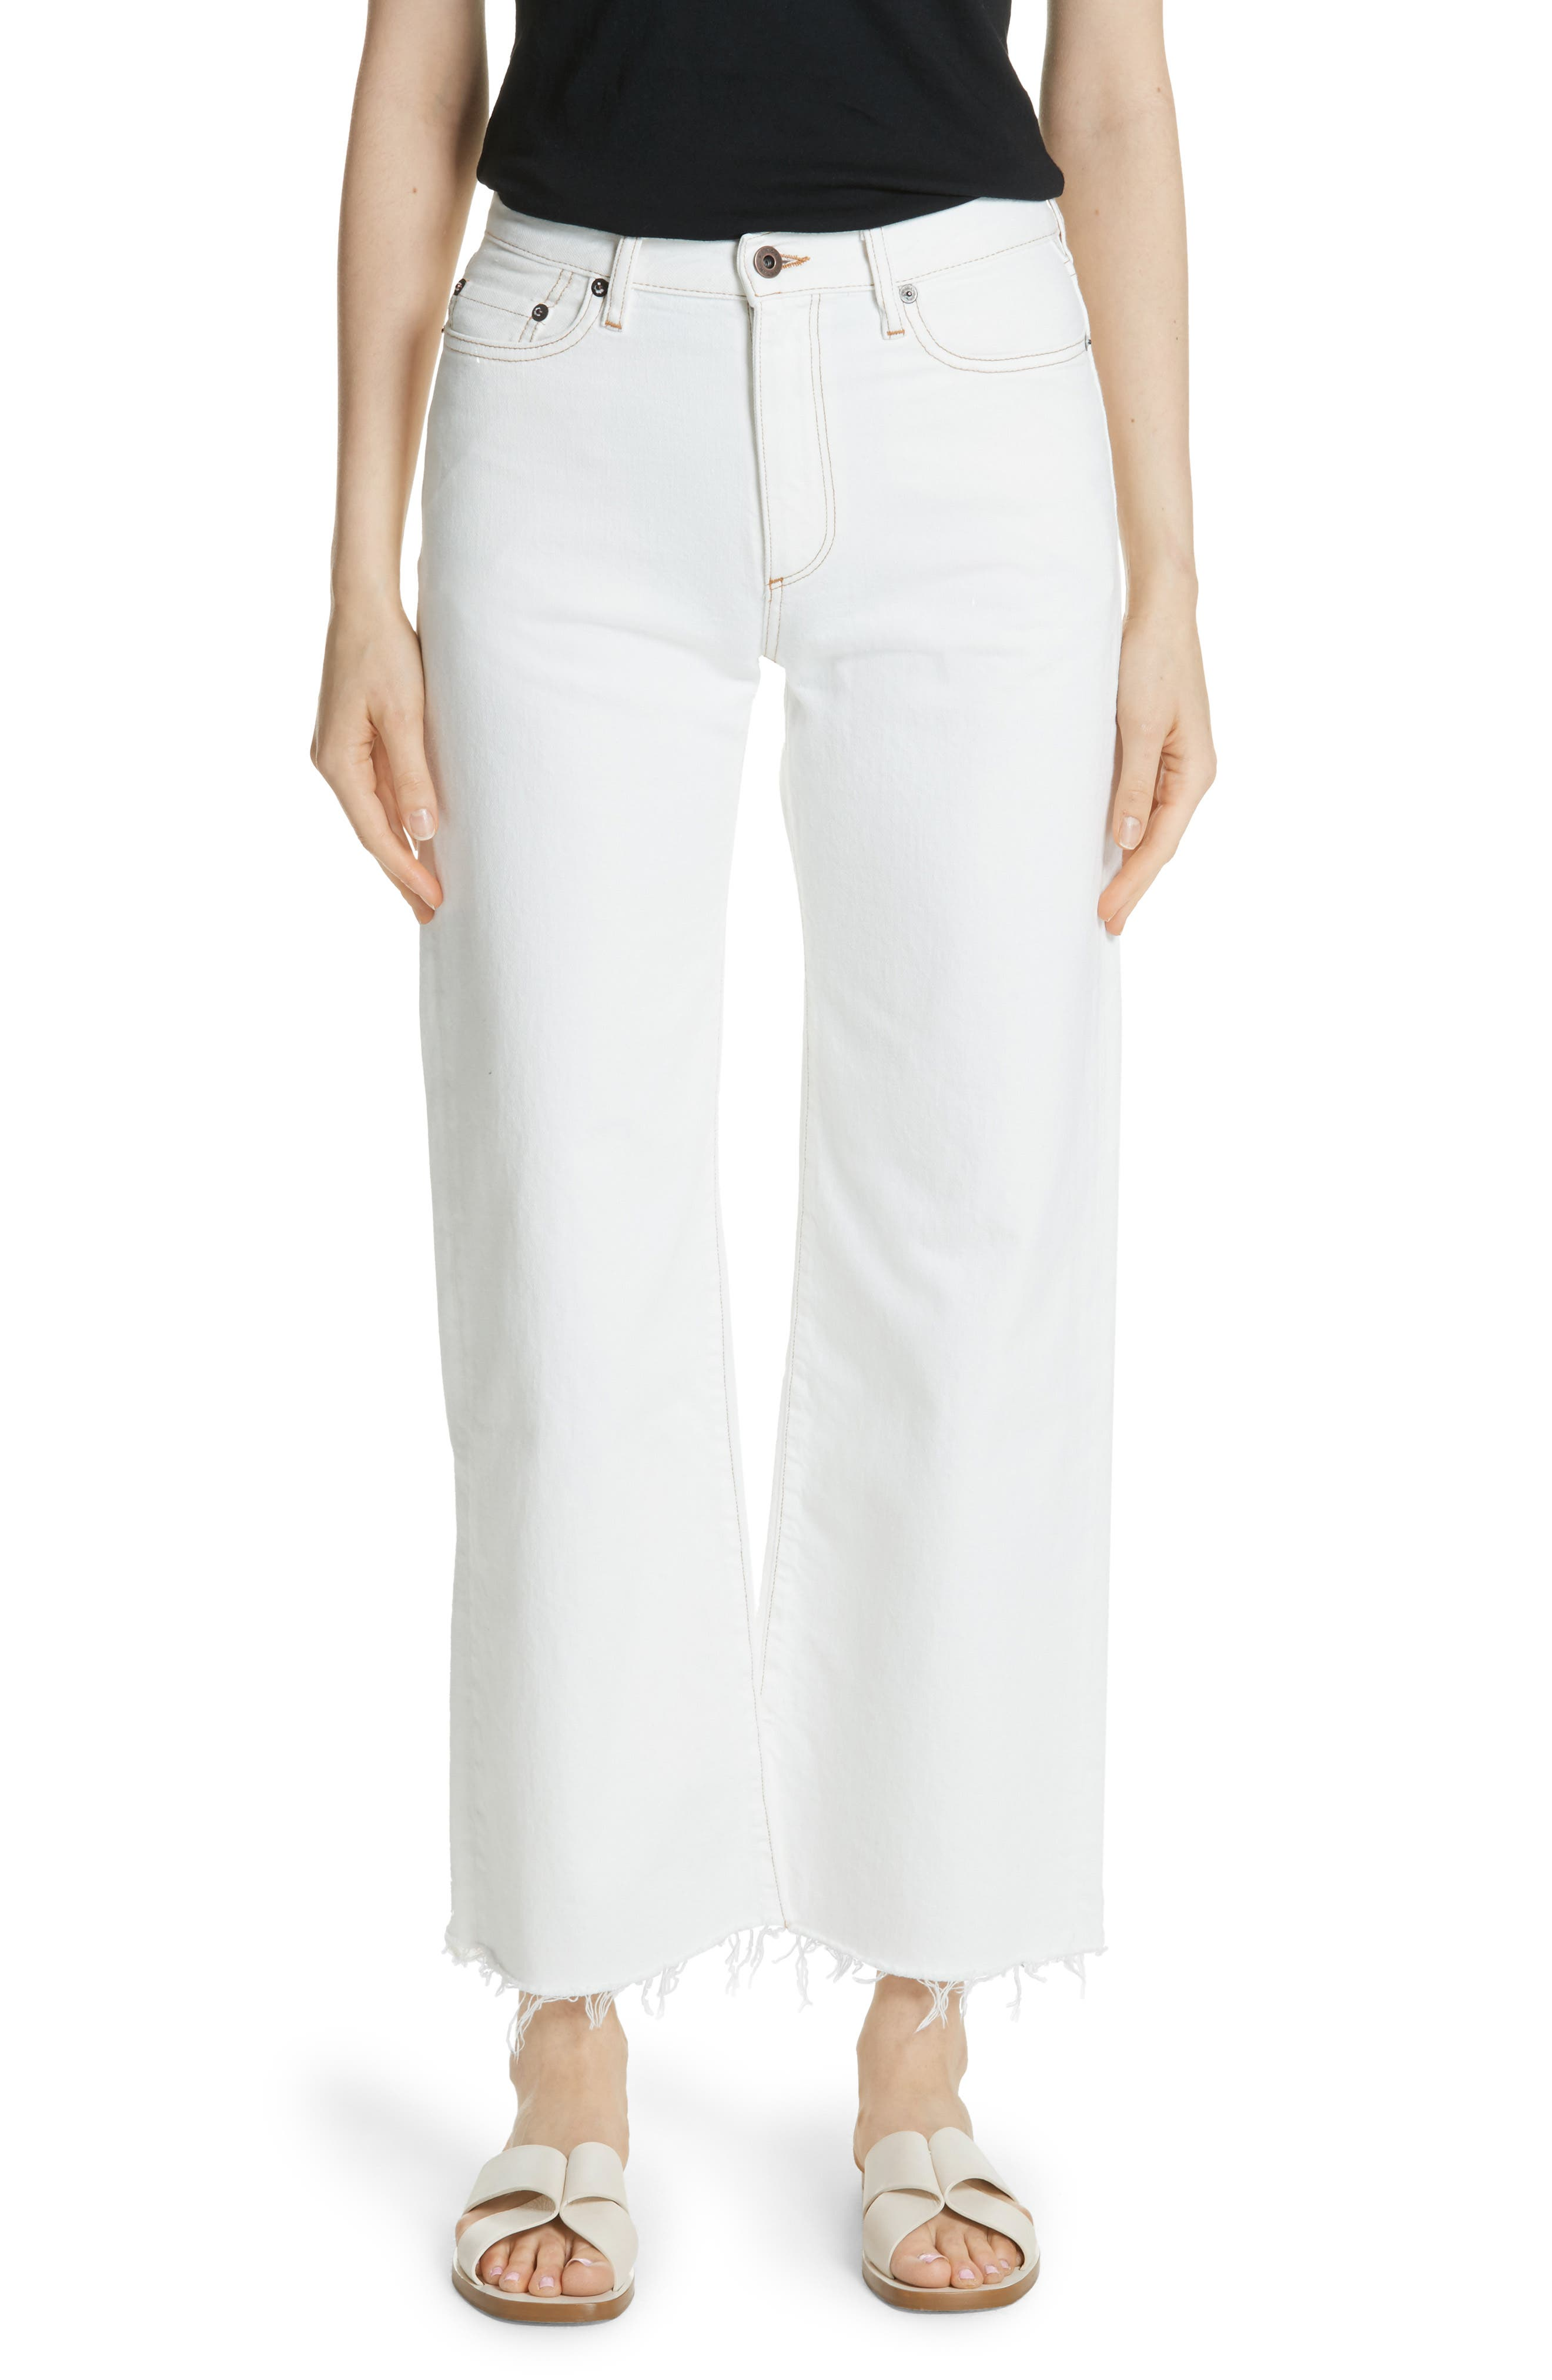 Simon Miller Enid High Waist Wide Leg Jeans